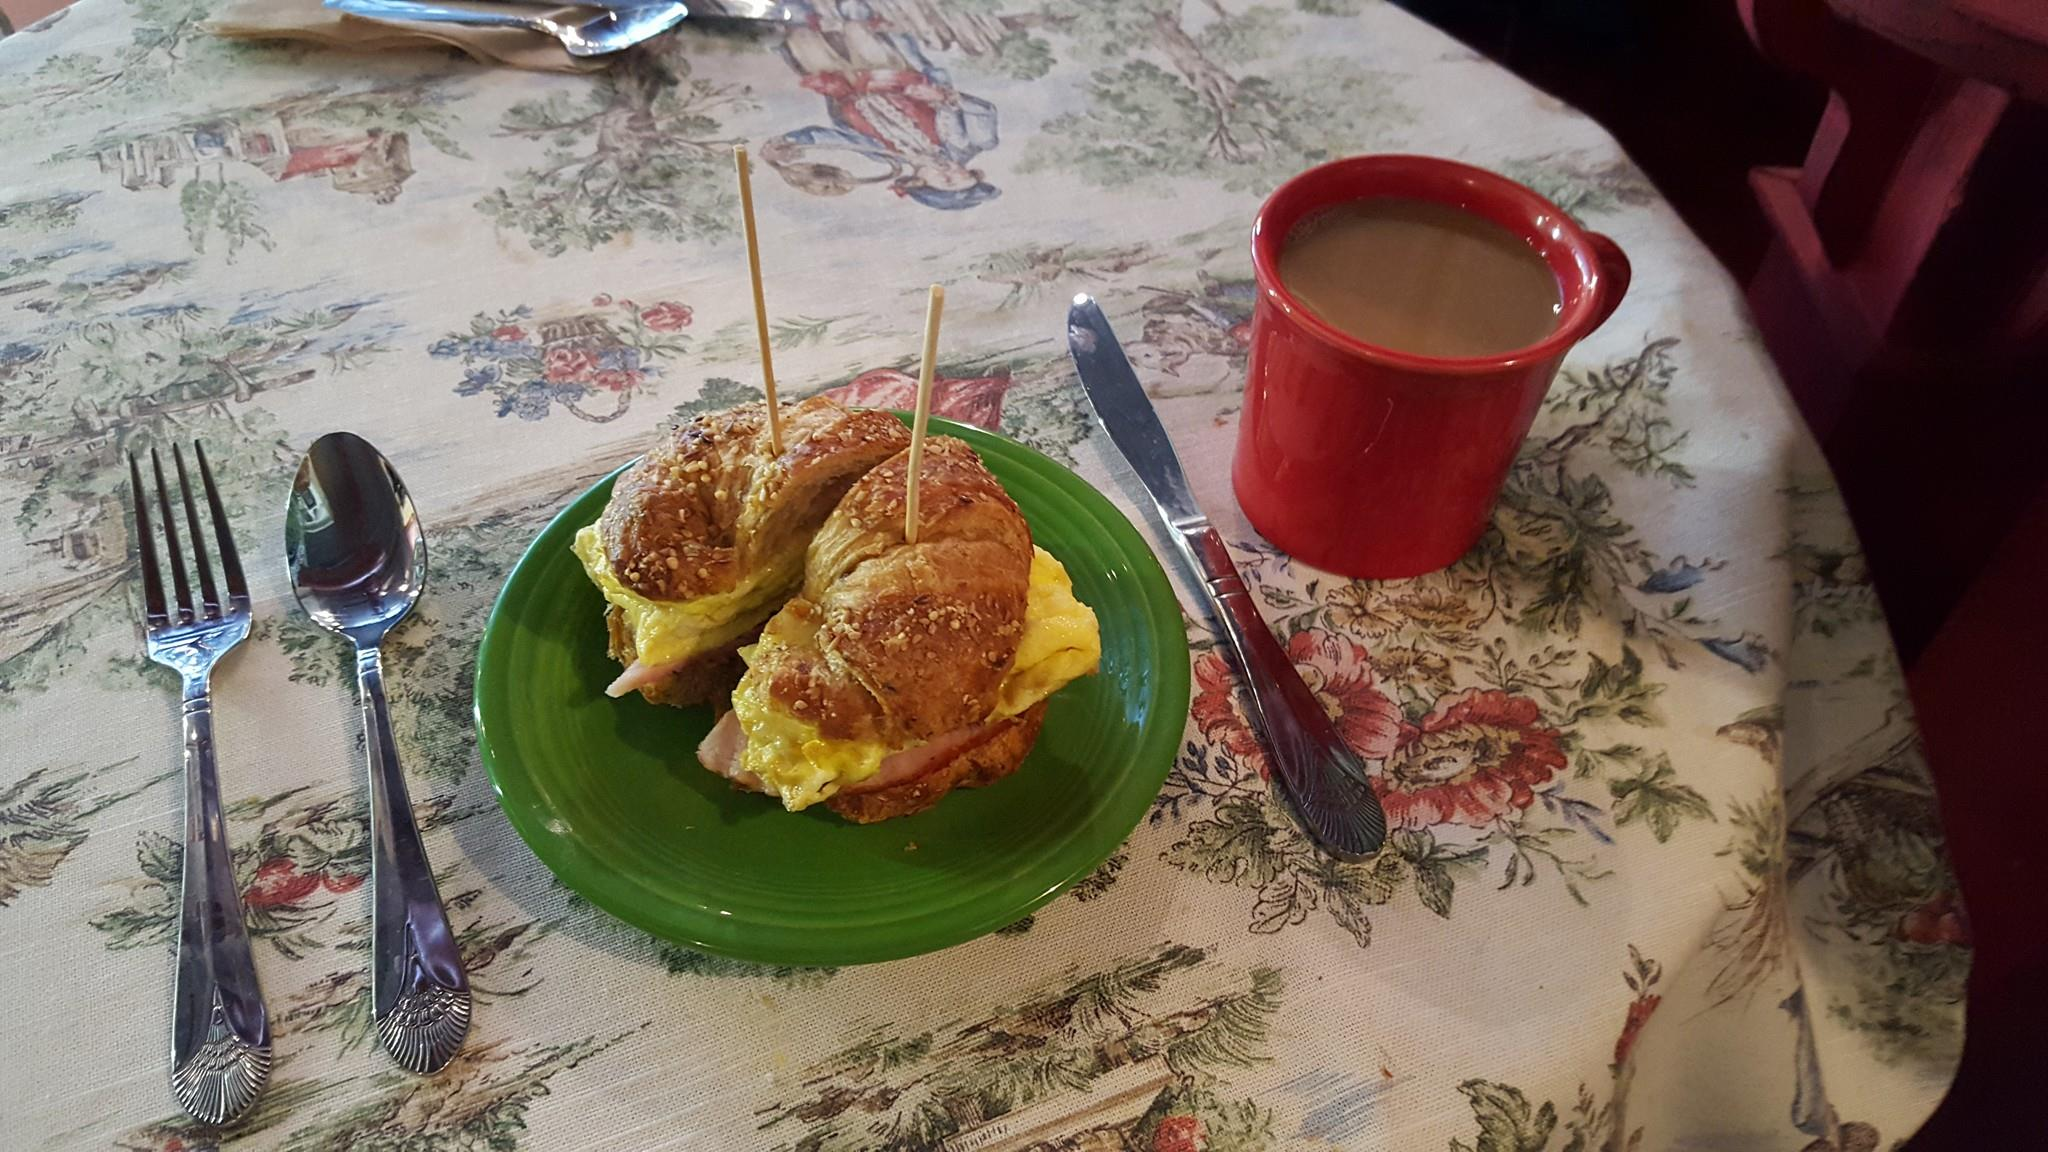 At Cause Café in Northport, Wednesday is buy one, get one half off breakfast sandwiches if you follow the café's Facebook page and mention it to the staff.  Photo/Facebook